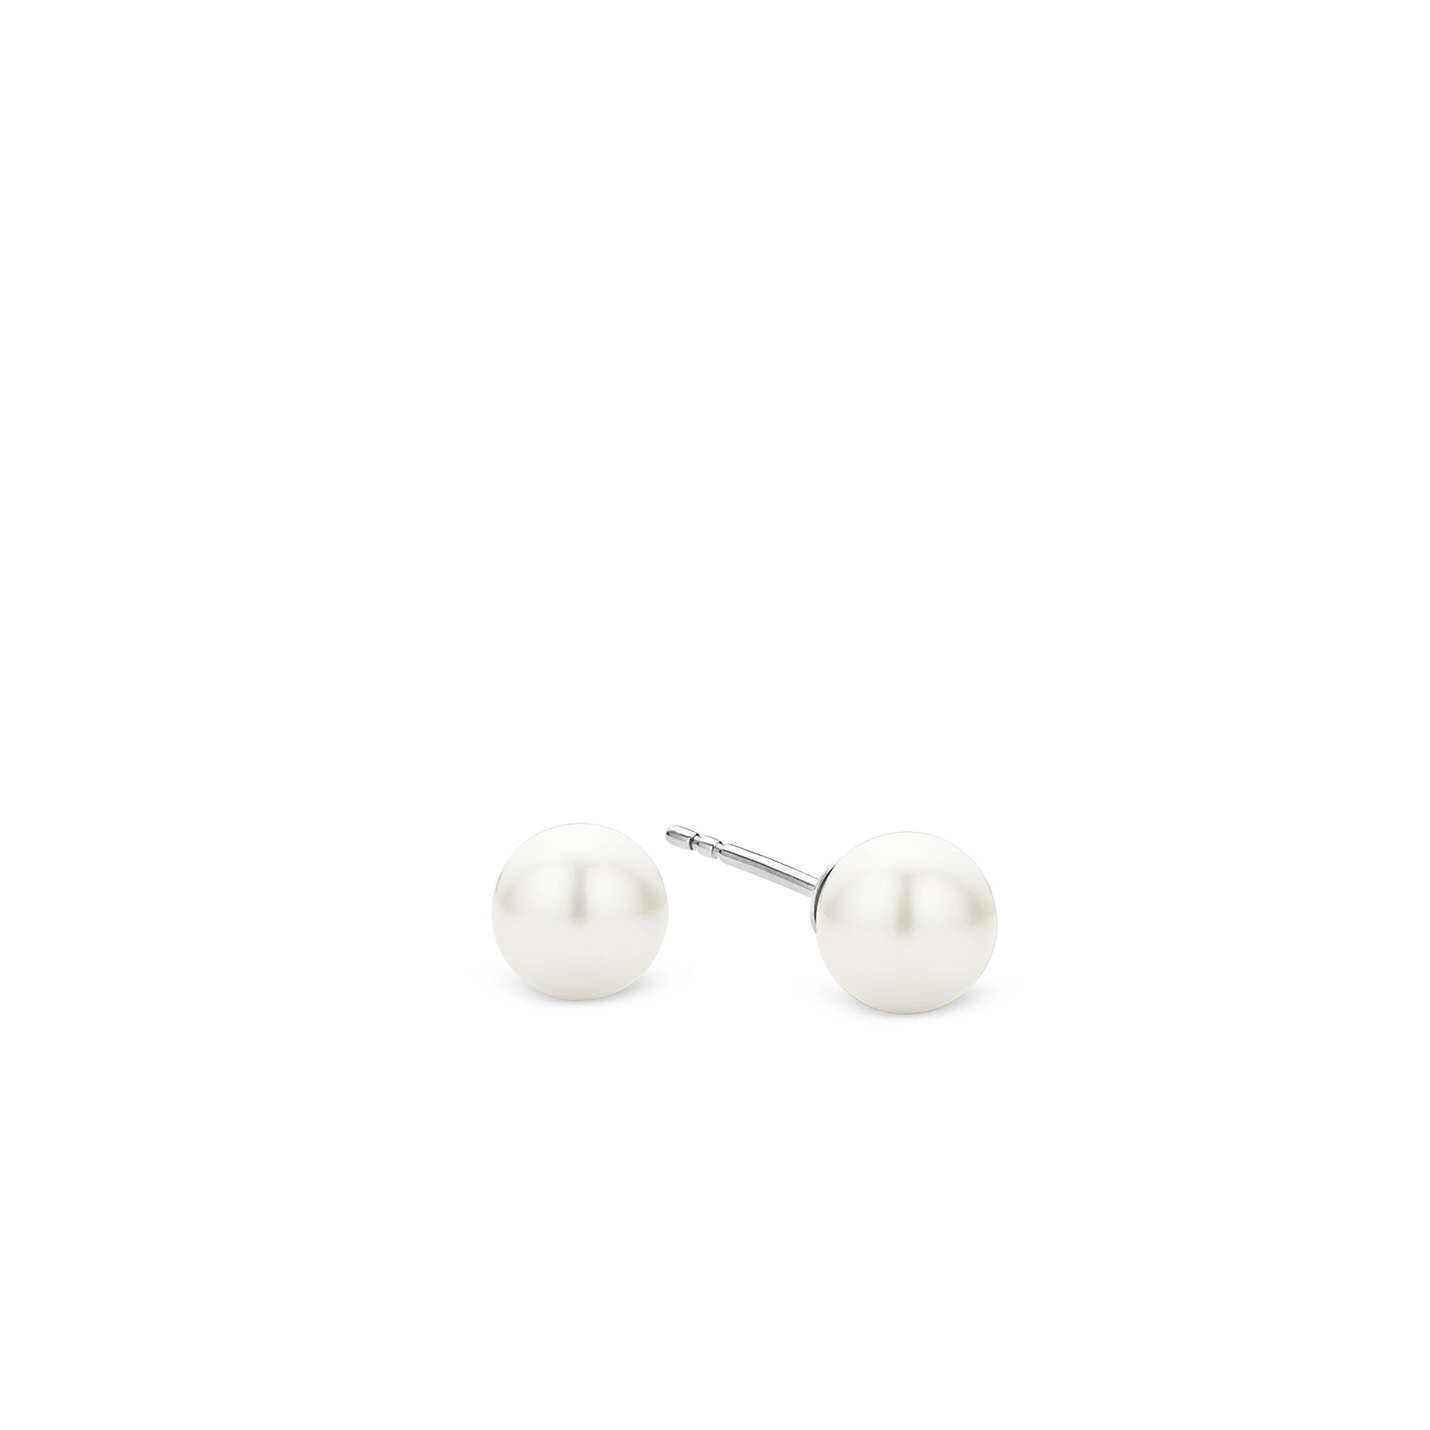 Ti Sento Pearl Stud Earrings – Medium